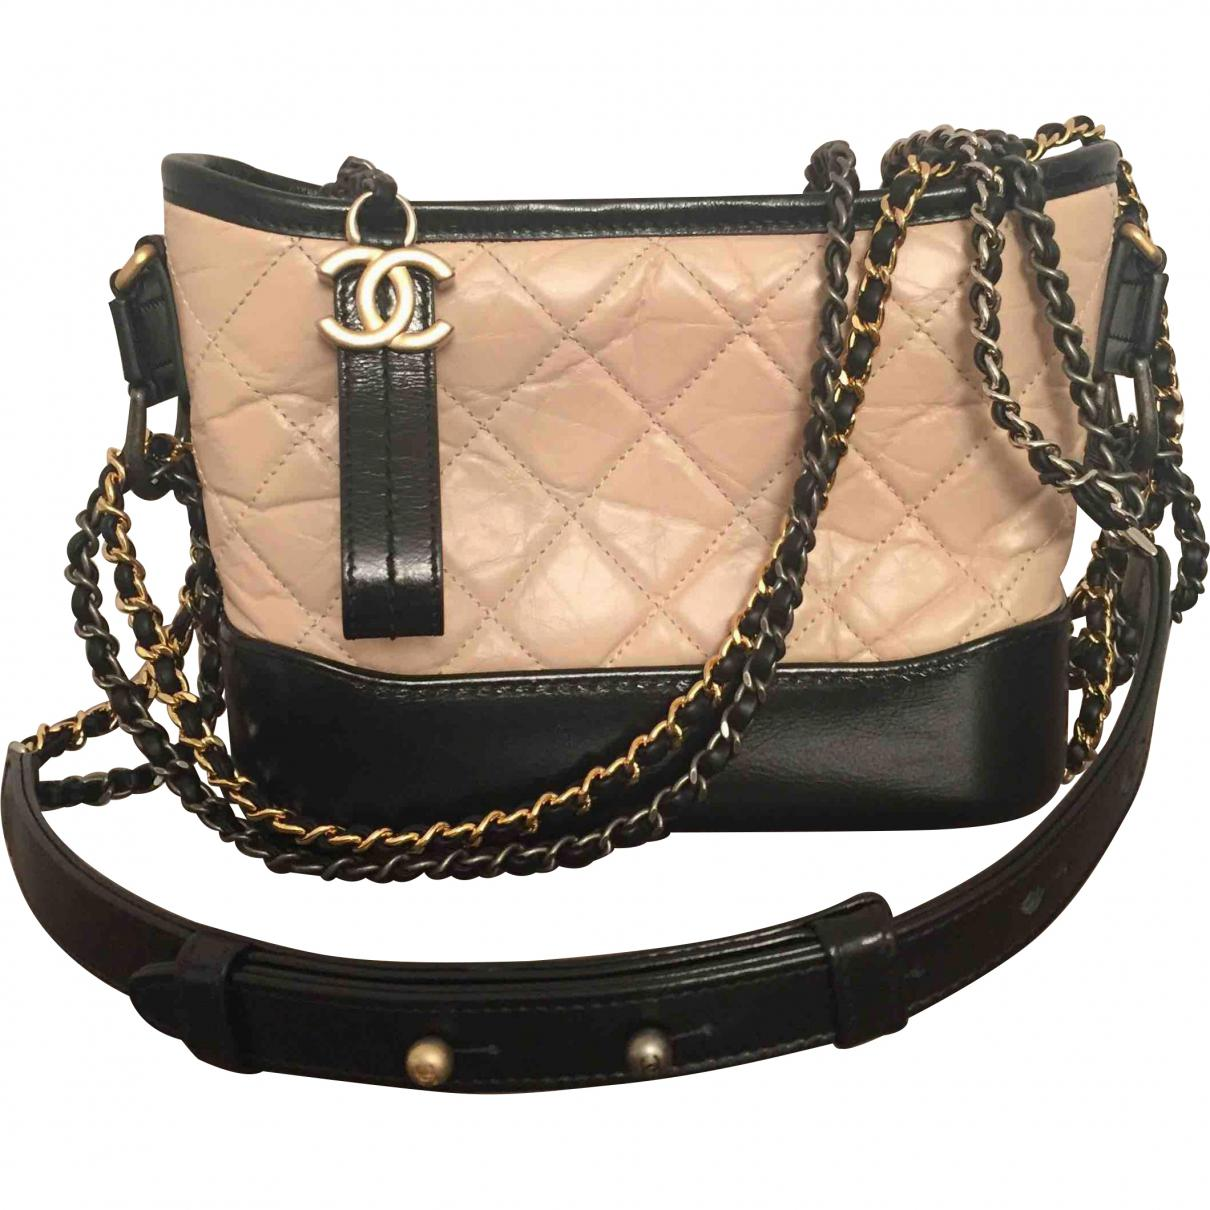 Chanel Pre-owned - Gabrielle leather handbag sKeGEk